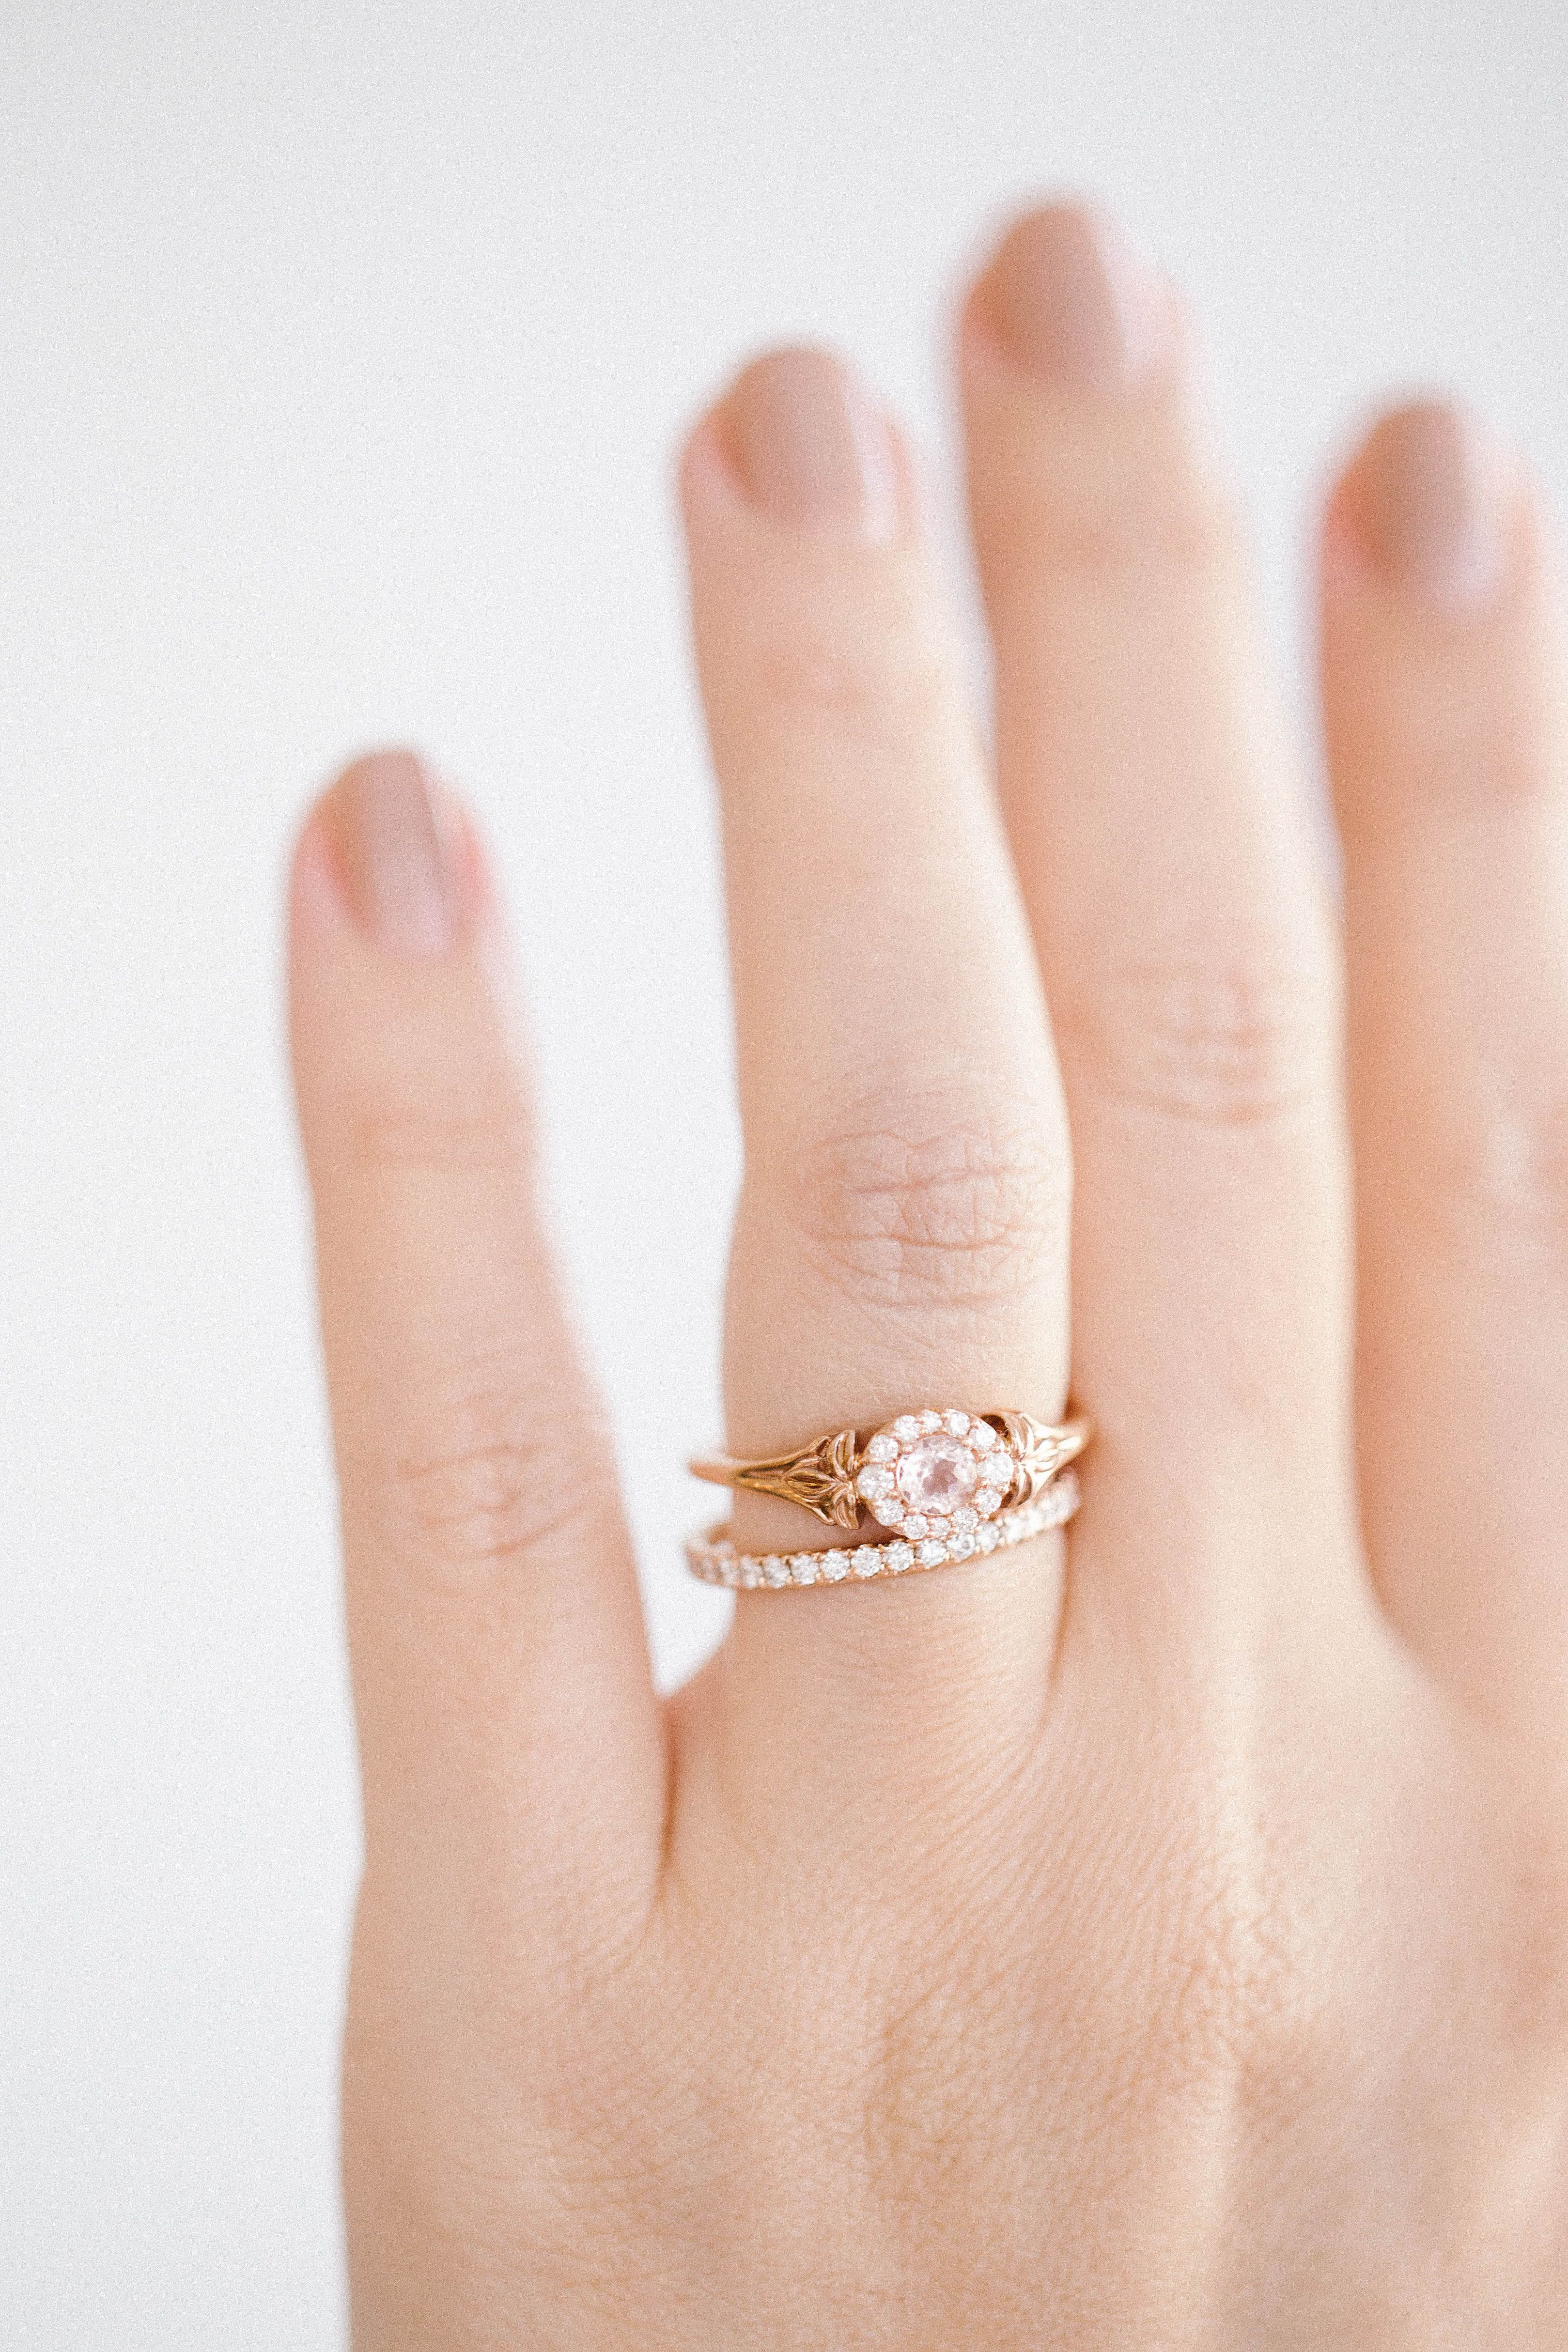 Lc Lauren Conrad 10k Rose Gold Morganite & Diamond Flower Ring  Available  At Kohl's